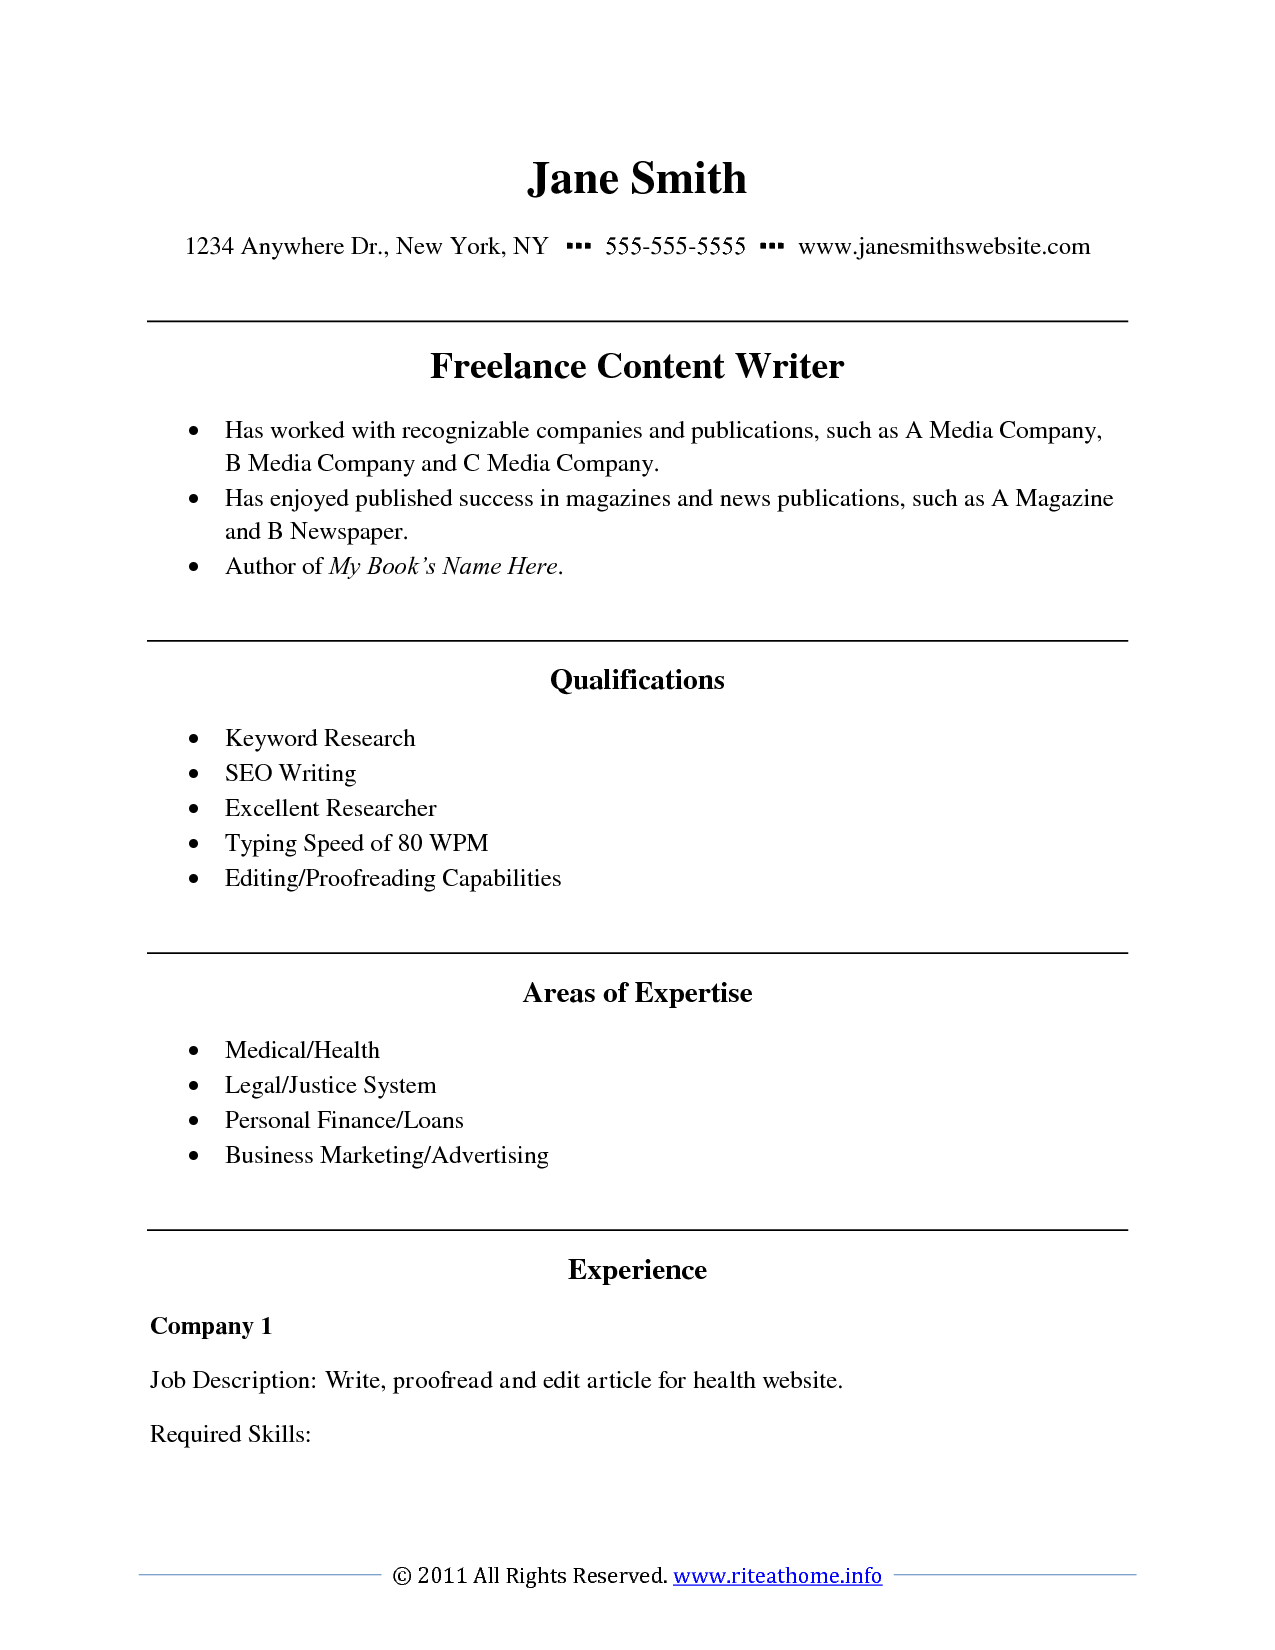 Resume Writing Examples Sample Resumes HDWriting A Resume Cover ...